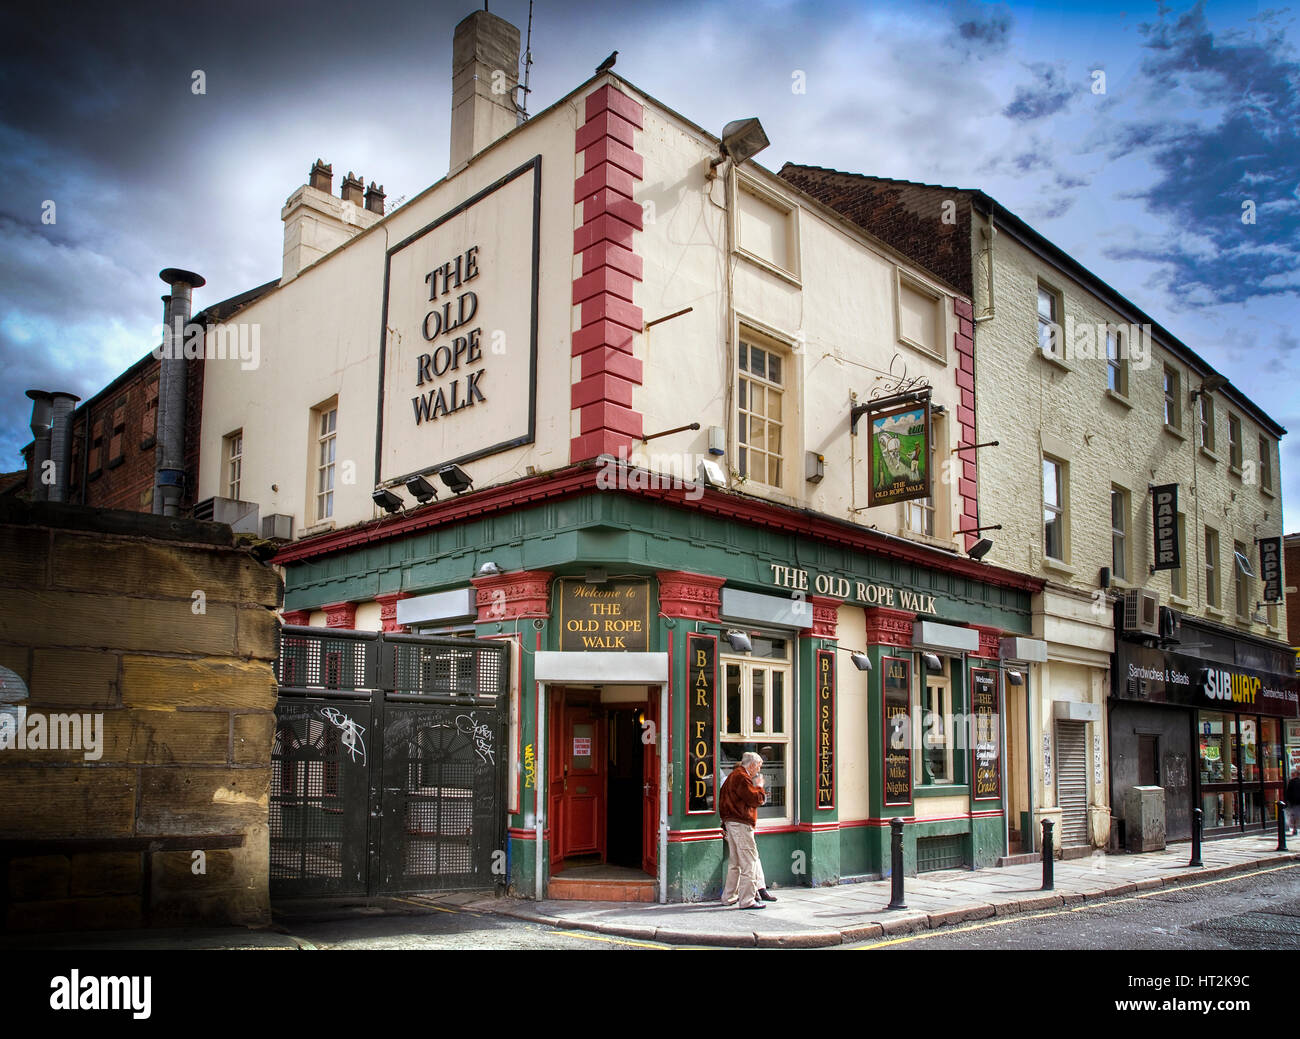 The Old Rope Walk public house in Newington Liverpool. - Stock Image